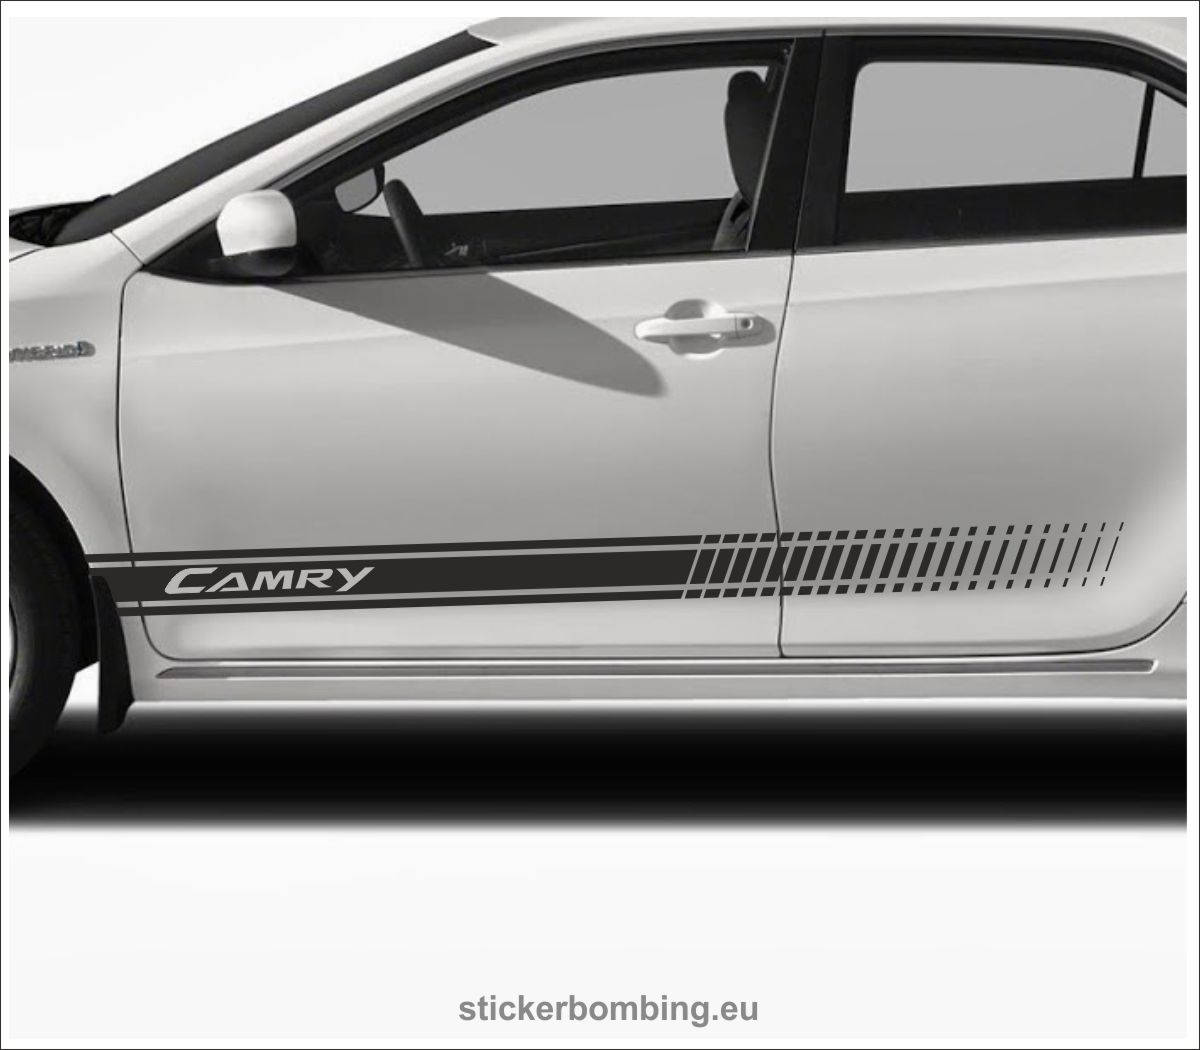 Toyota camry lower panel door stripes vinyl graphics and decals kits 2012 1017 camry stripes